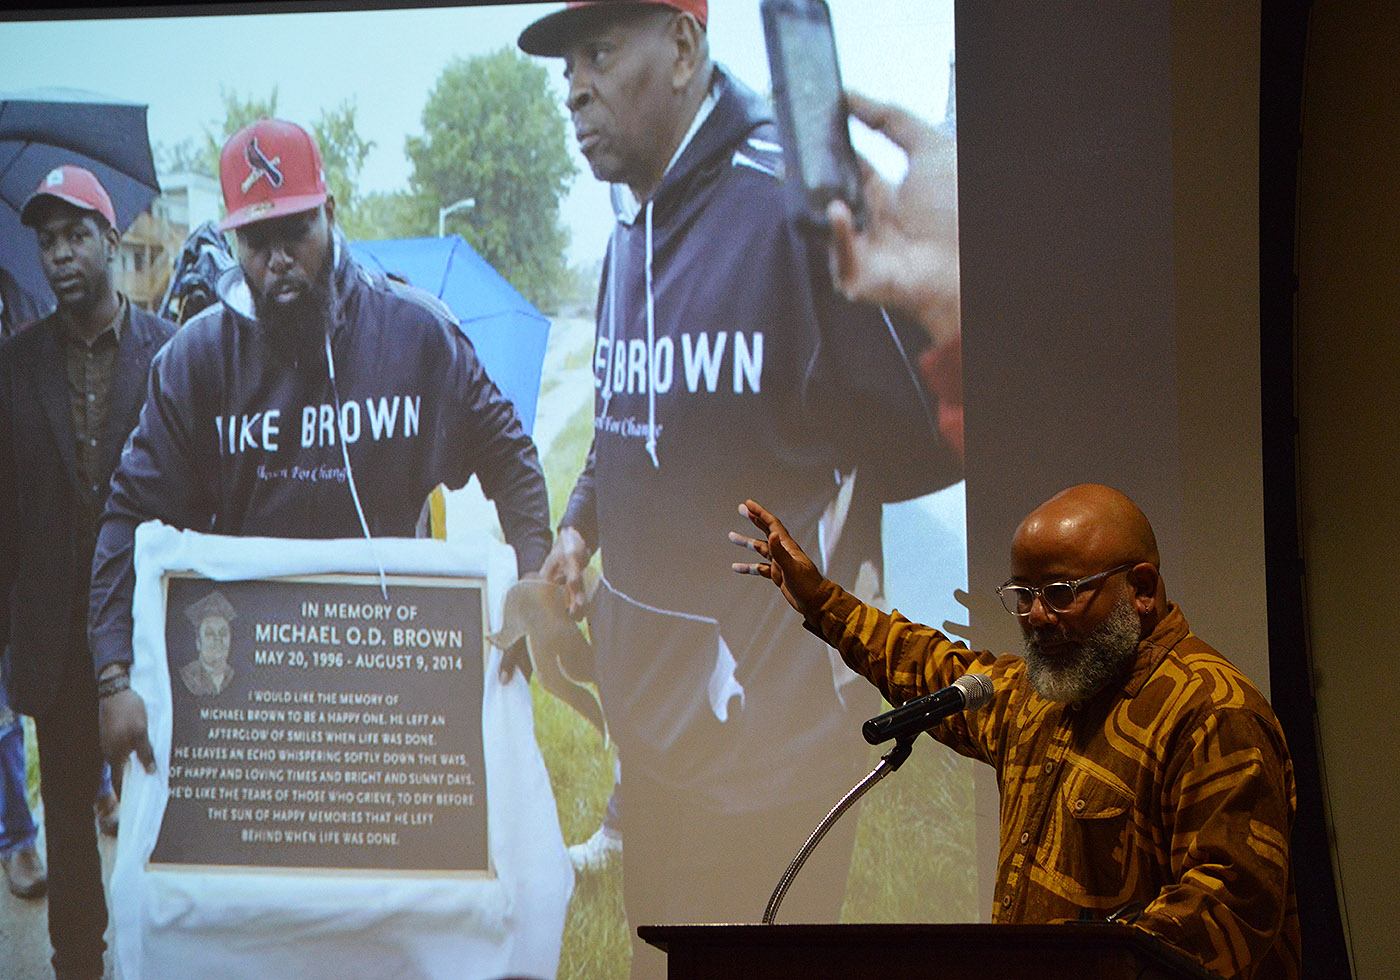 The 26th Annual Dwight L. Greene Symposium presented Black Phoenix Rising, a multimedia, digital scholarship, and cultural arts project exploring black people's ways of resisting material and symbolic death in American life and culture.